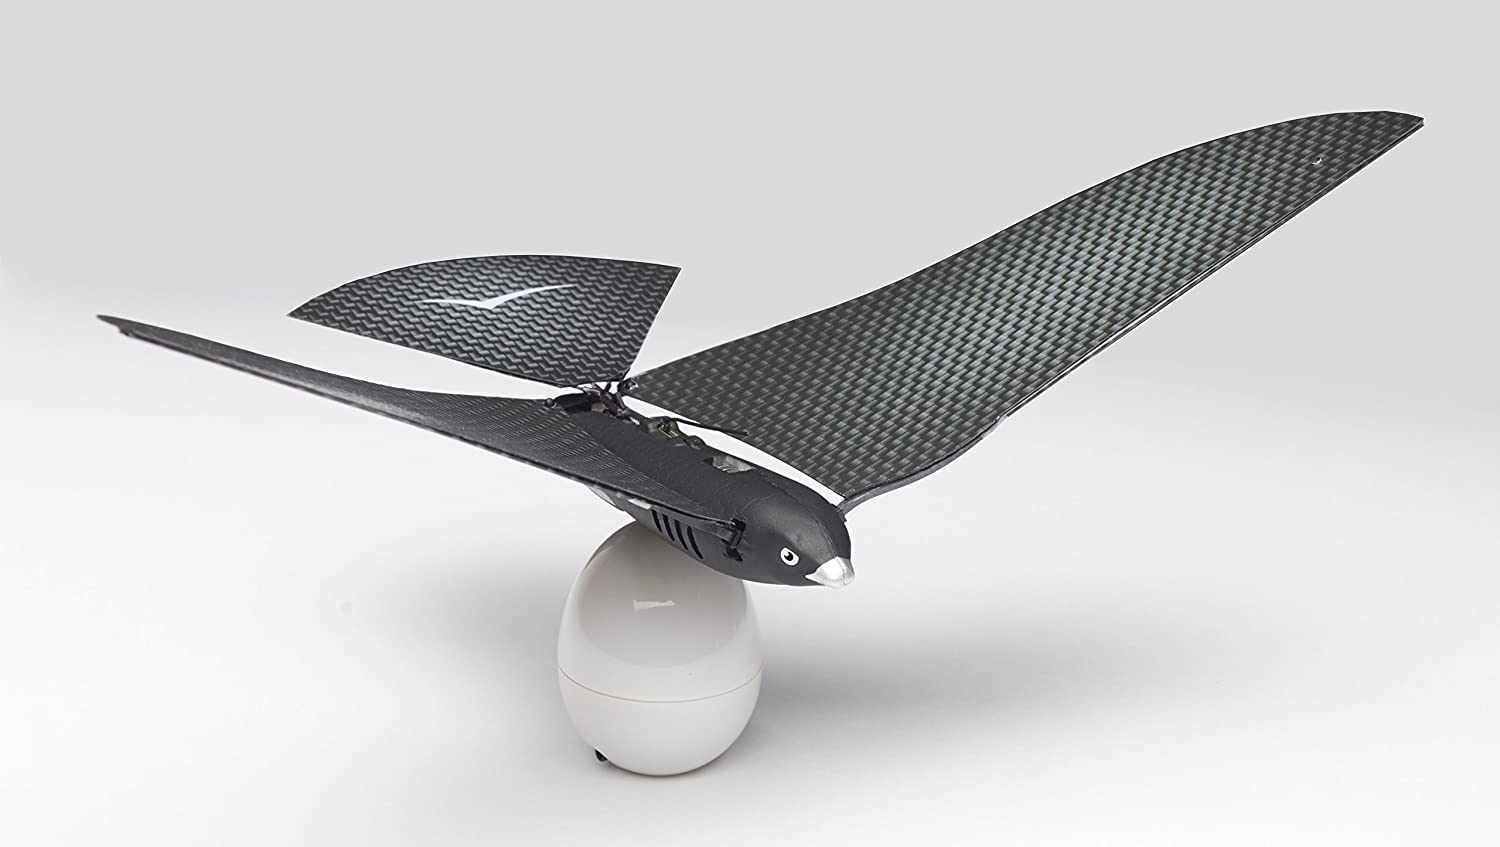 Buy Bionic Bird Flying Robotic Remotely Controlled By Smartphones Online At Low Prices In India